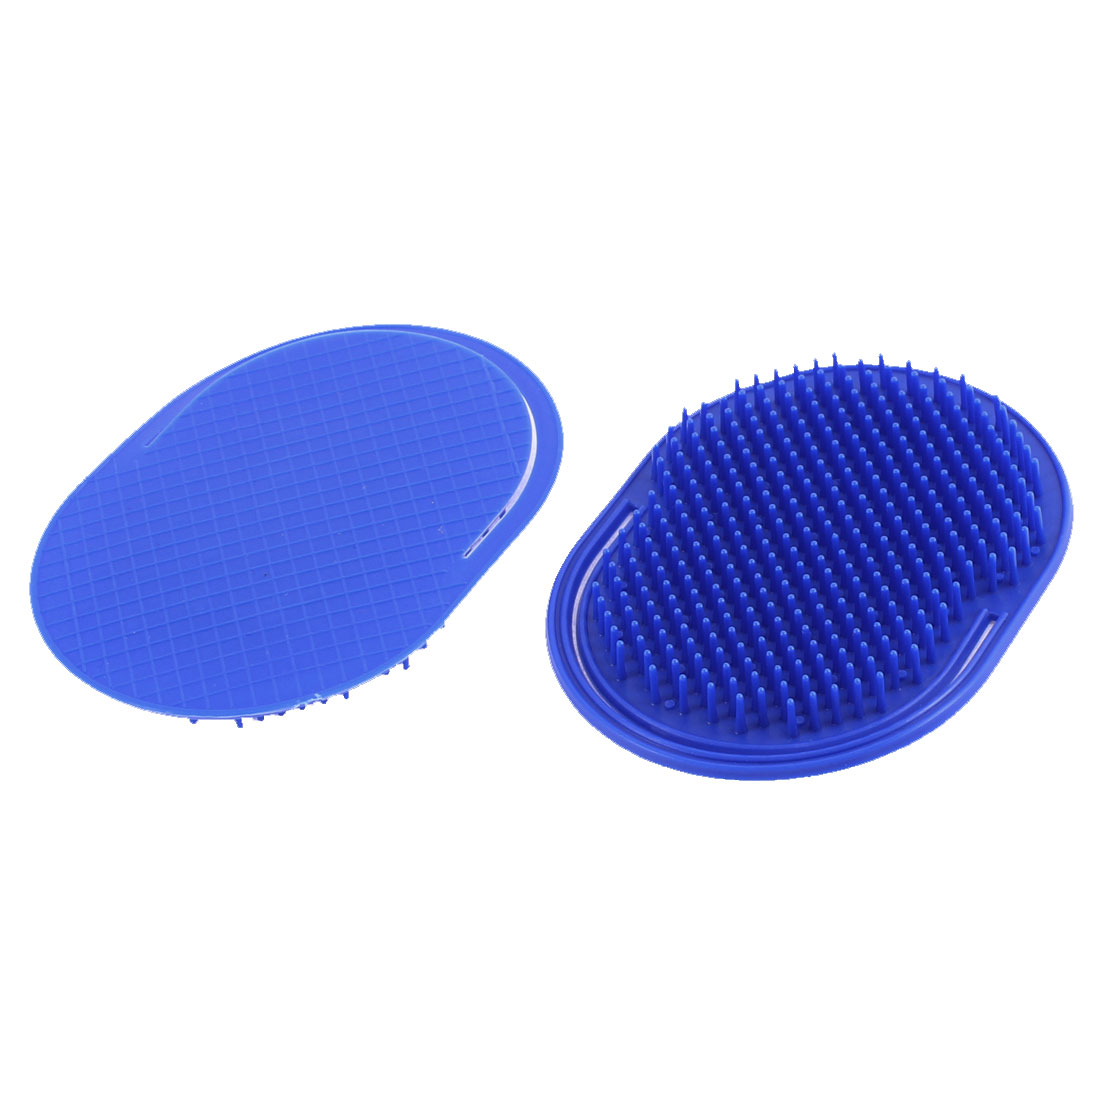 Oval Shape Hair Cleaning Scalp Massage Comb Shampoo Brush Dark Blue 2 Pcs